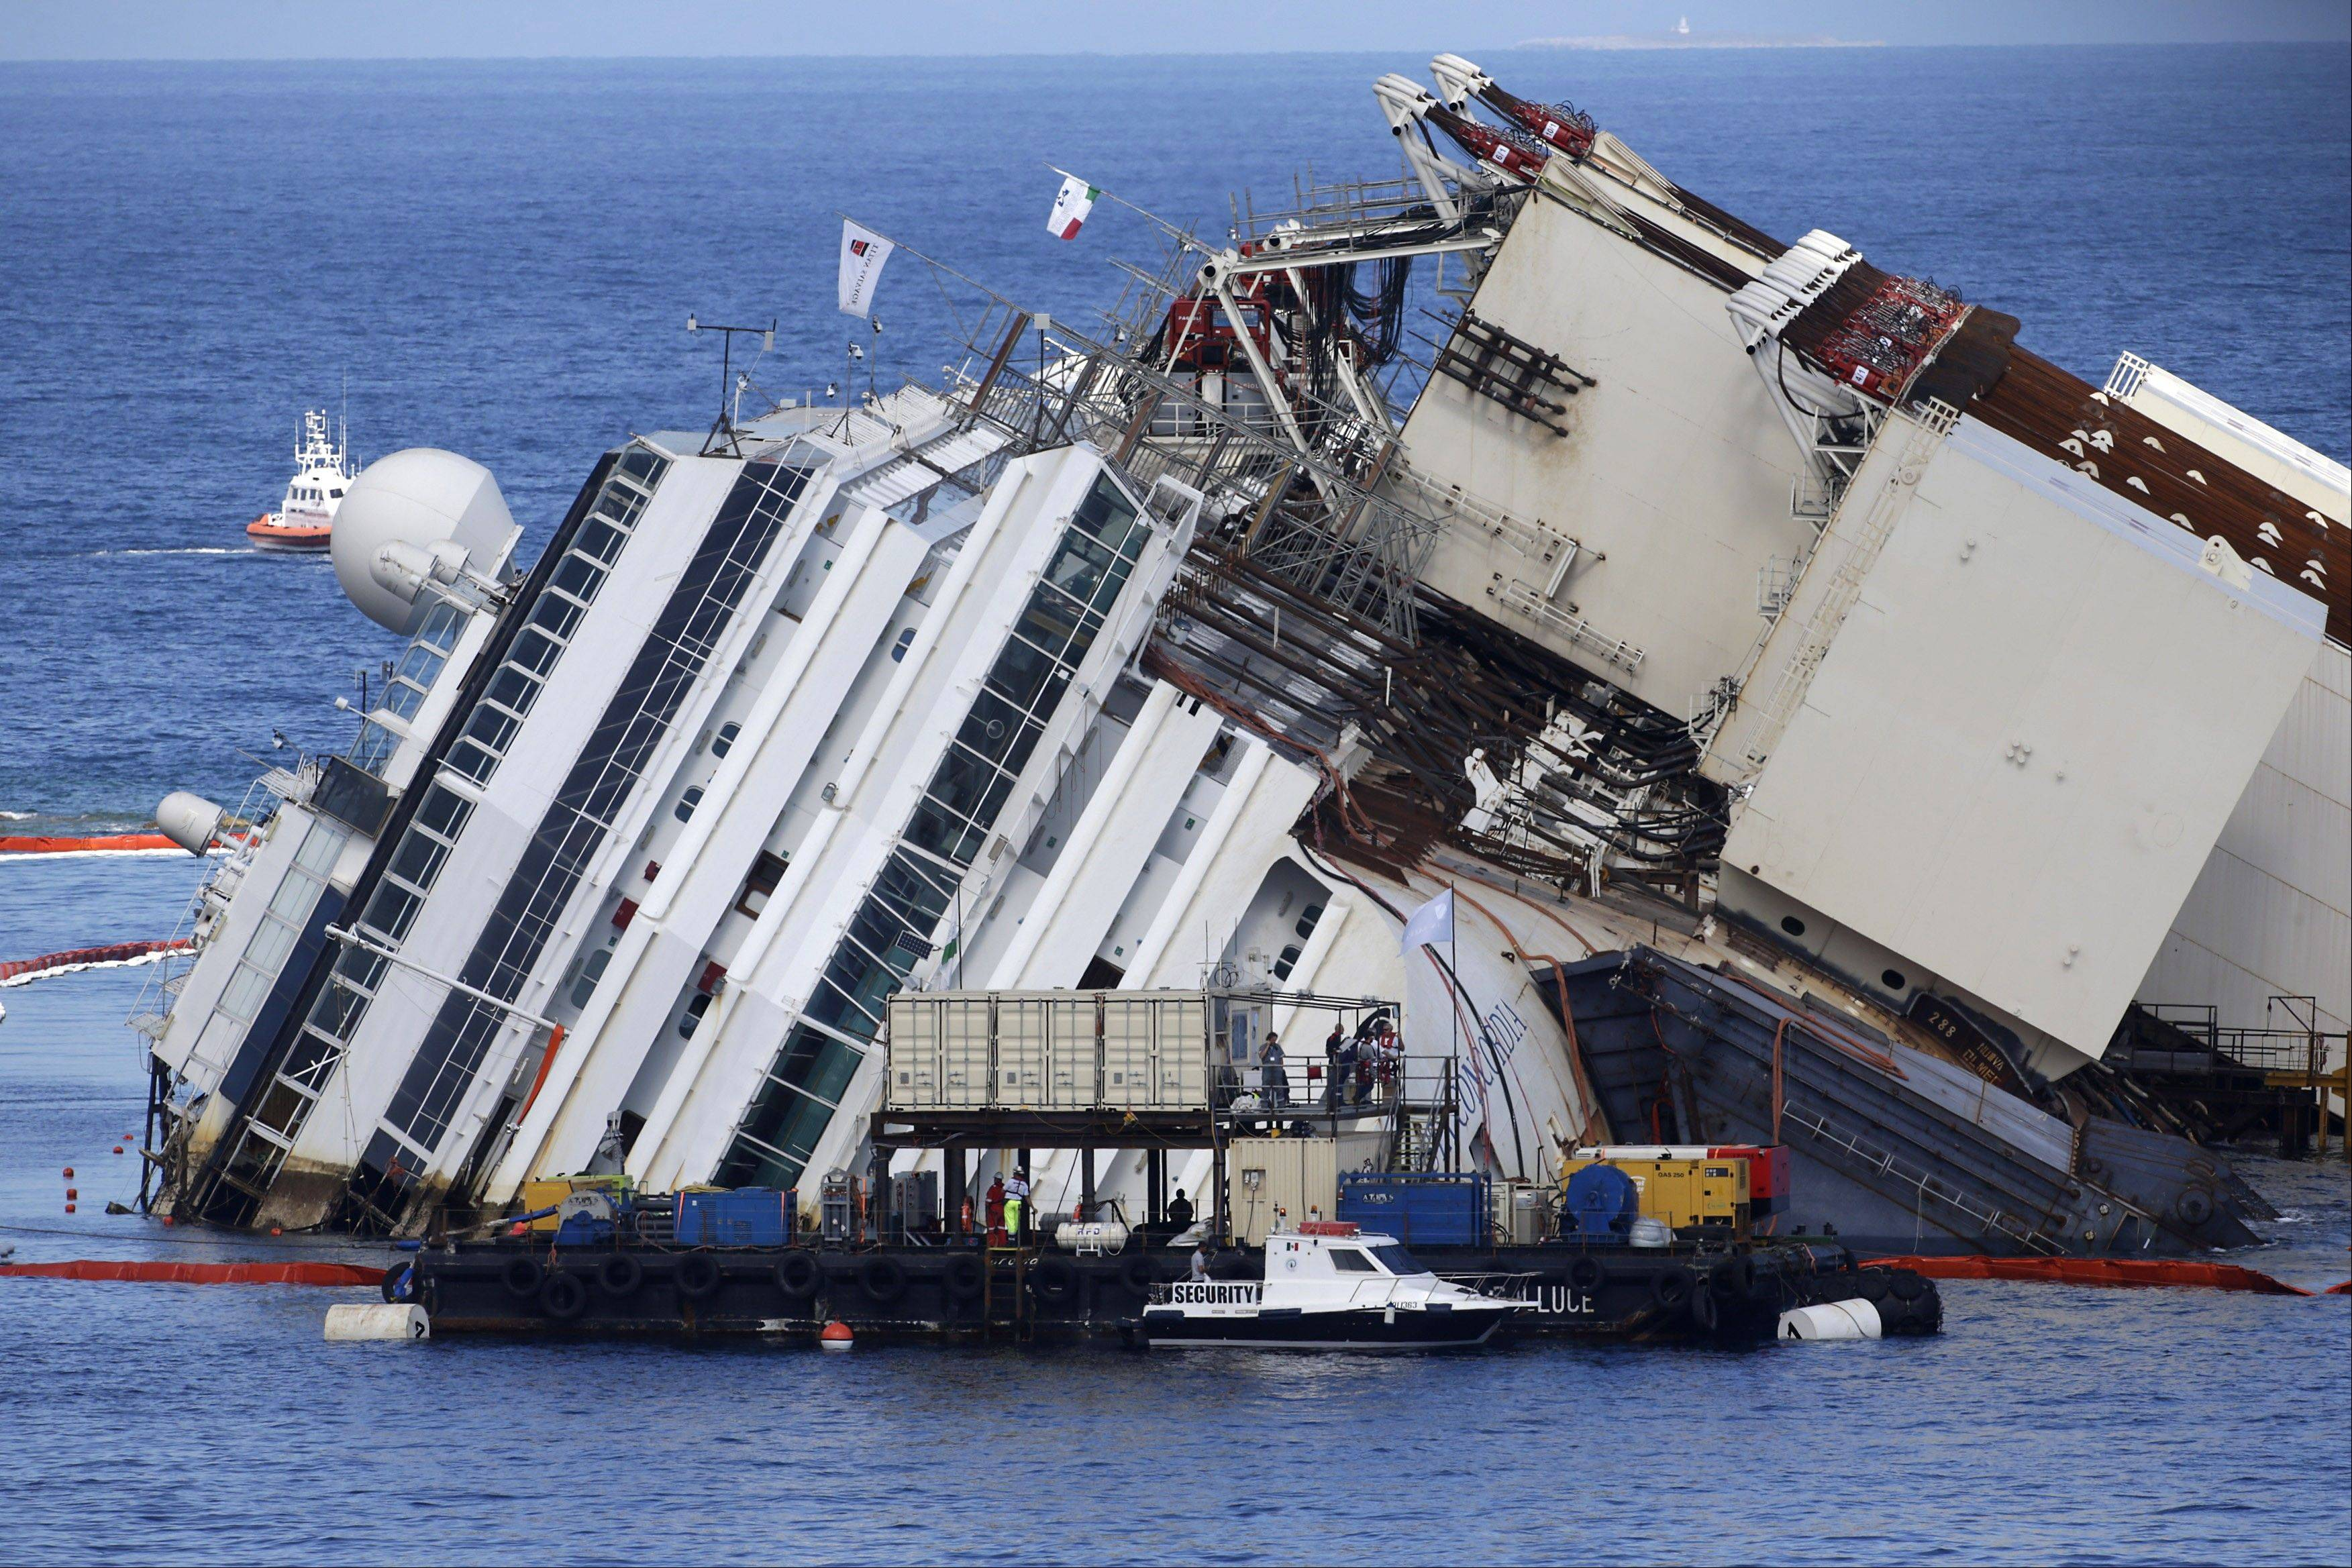 Shipwrecked Concordia wrested off Italian reef